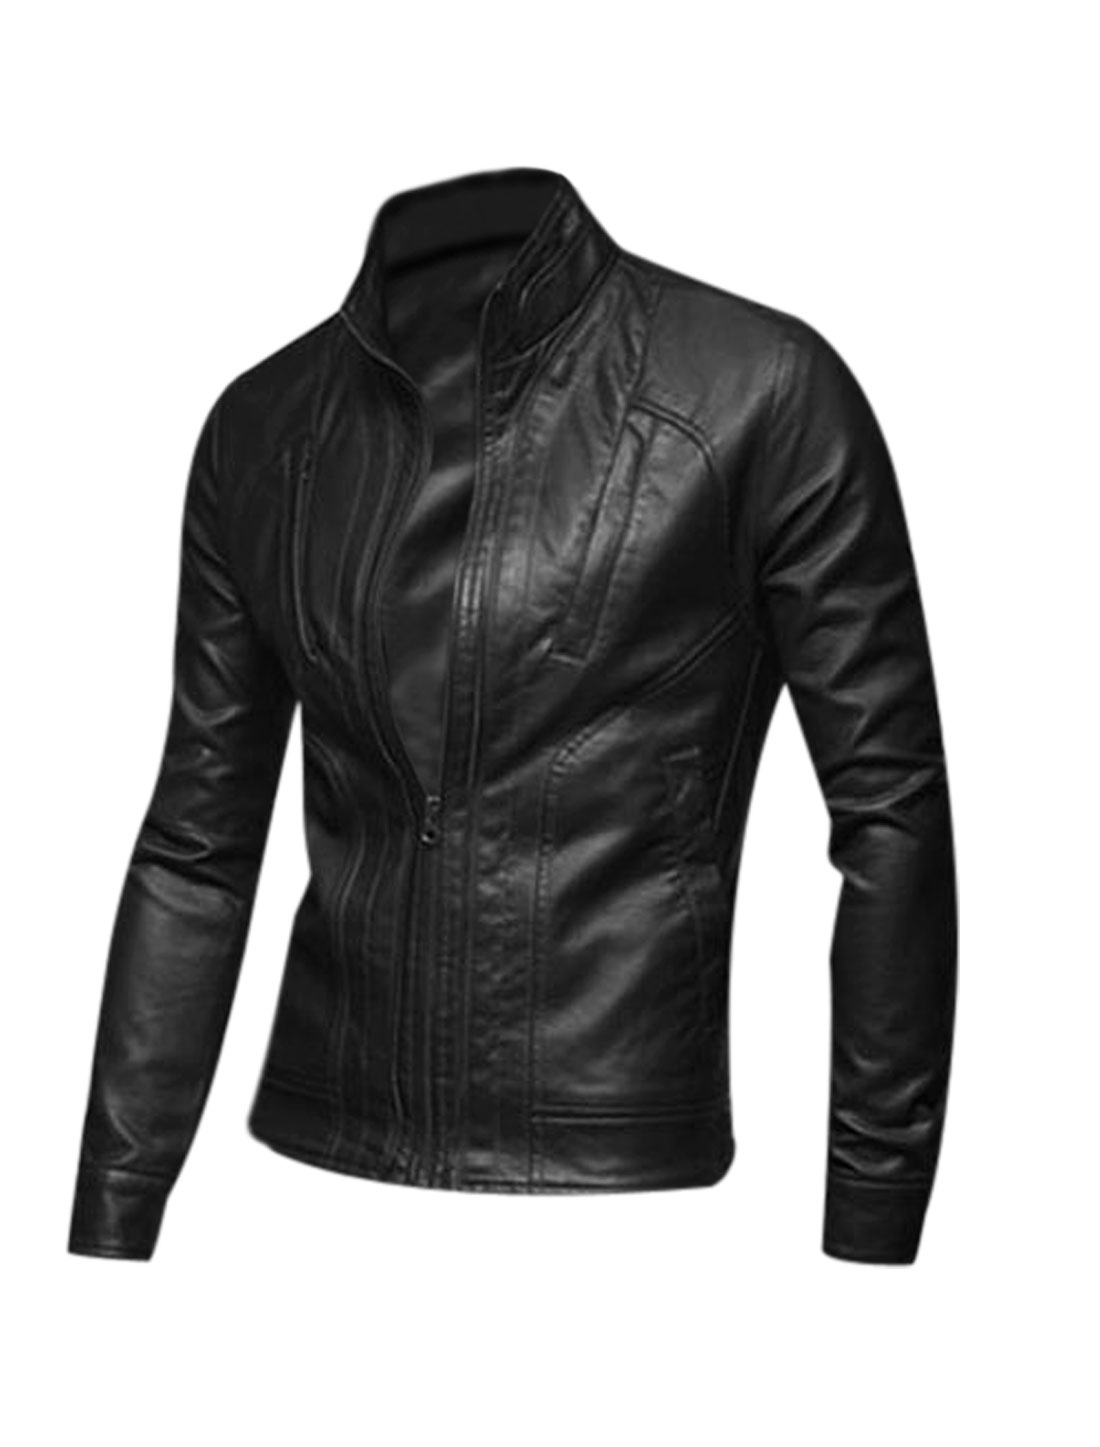 Stand Collar Zip Closed Casual Imitation Leather Jacket for Men Black M